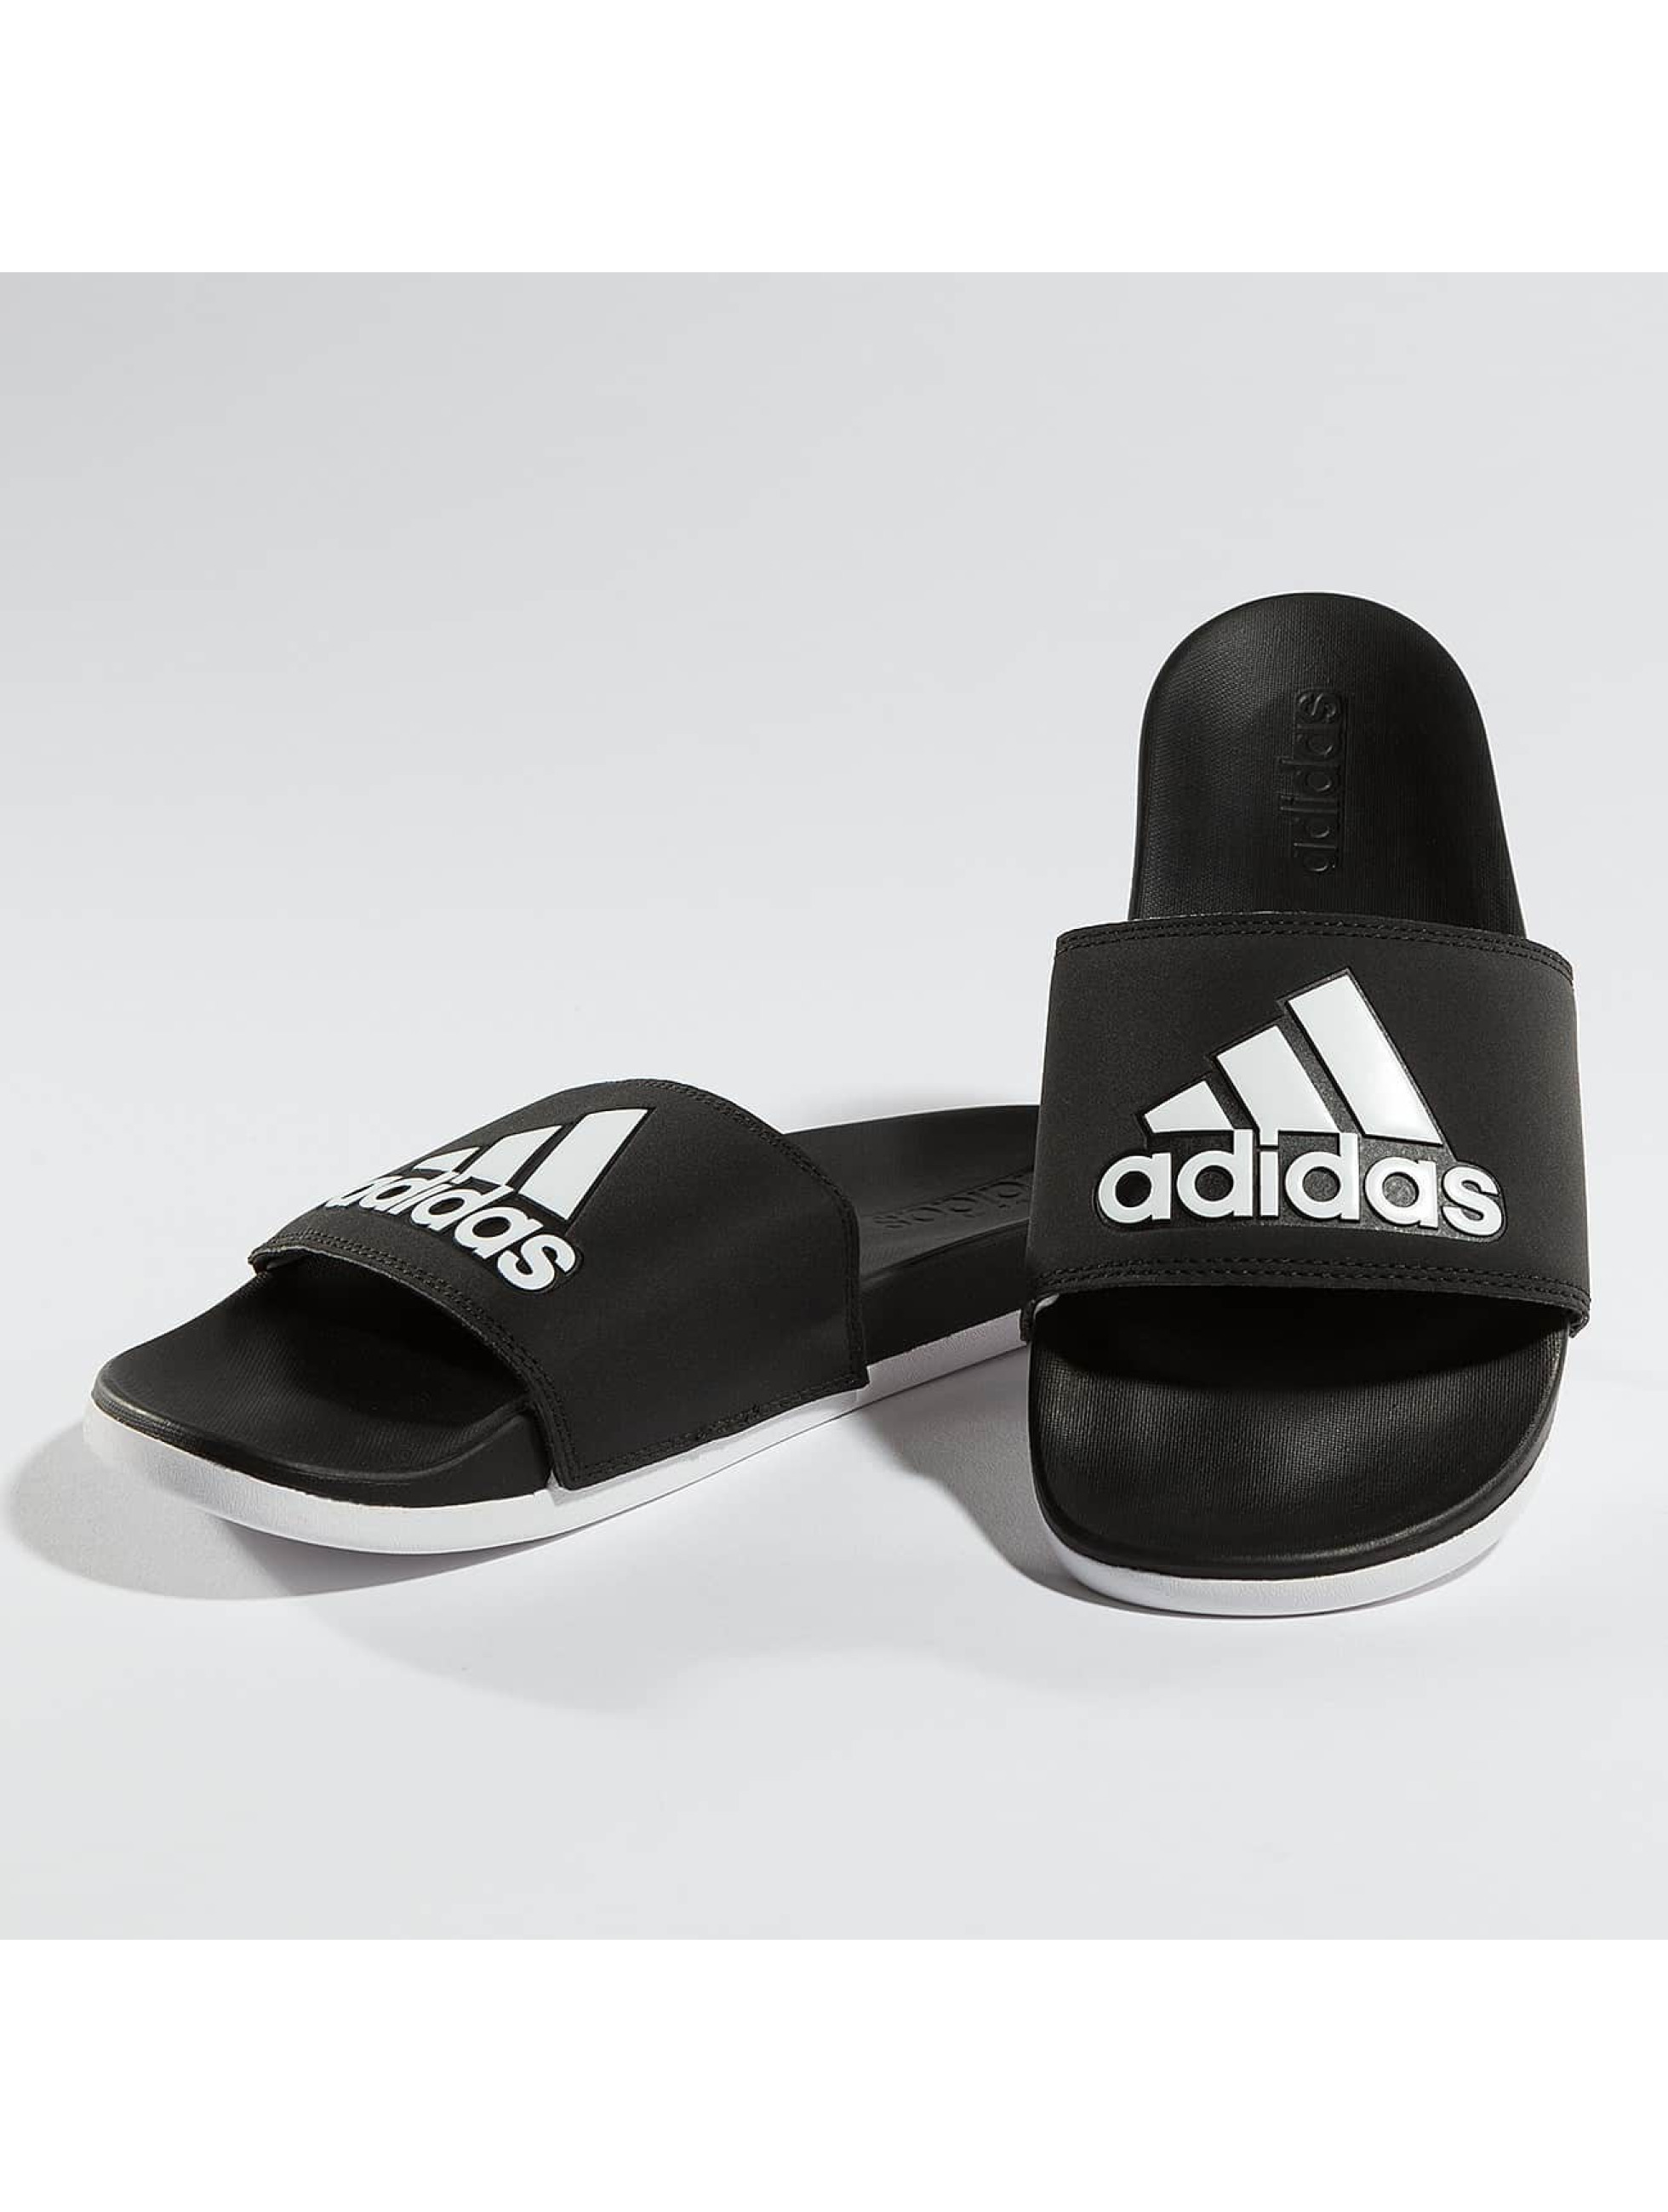 adidas Performance Sandals Adilette Comfort black